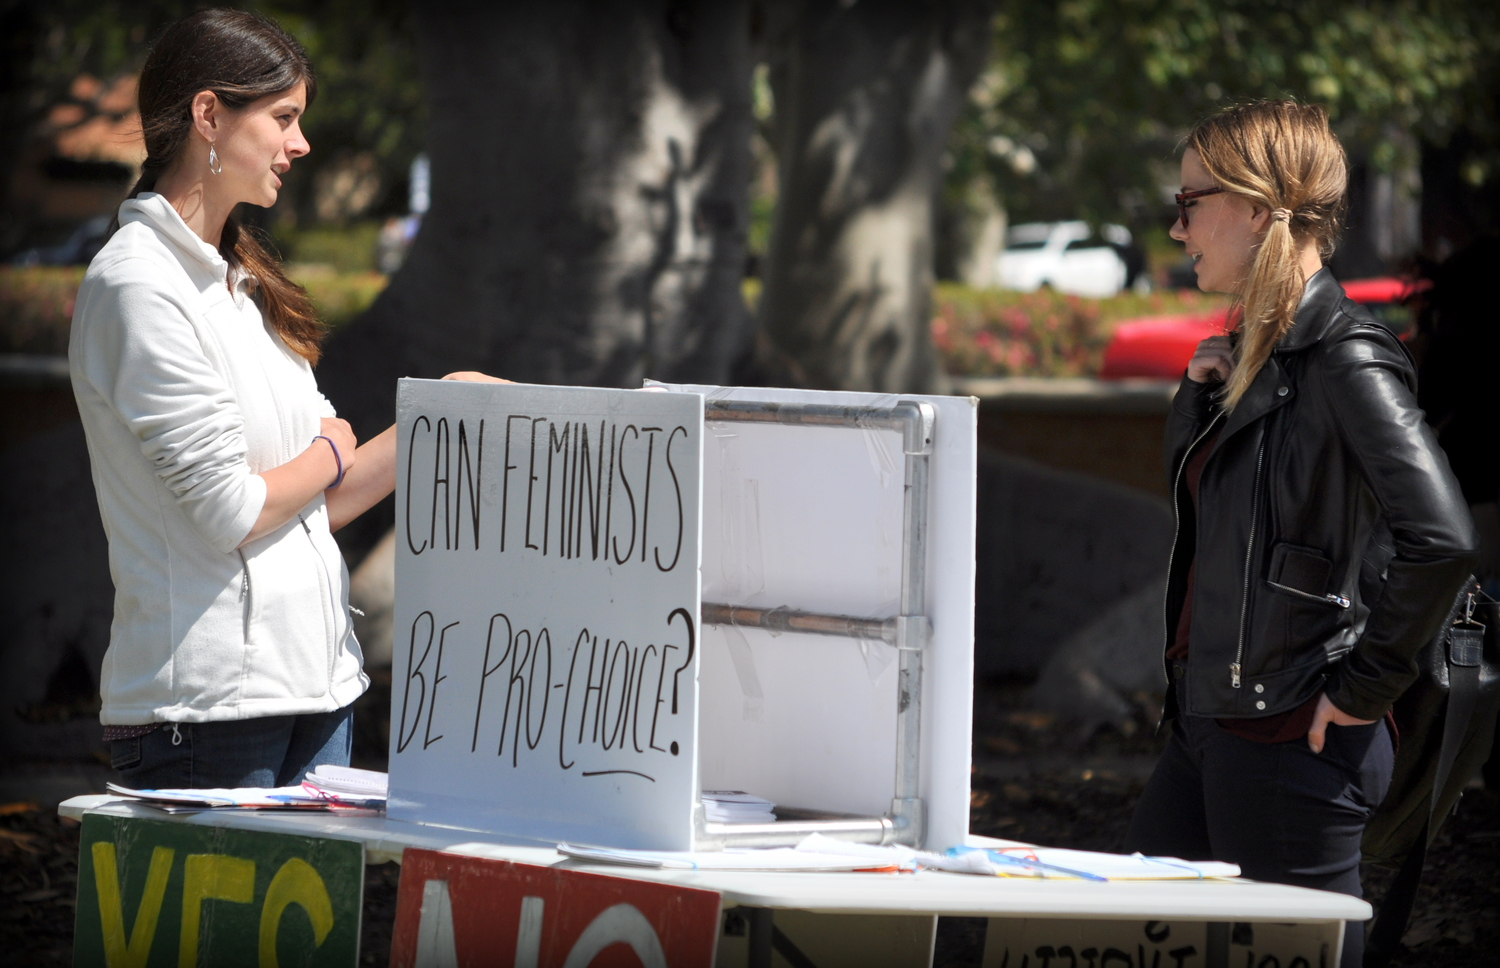 "JFA Trainer  Rebecca Haschke  talks to a UCLA student (May 2016) in front of one JFA poll table asking: ""Can feminists be pro-choice?"" The poll question's unexpected phrasing prompts many conversations about human equality and the pro-life position."